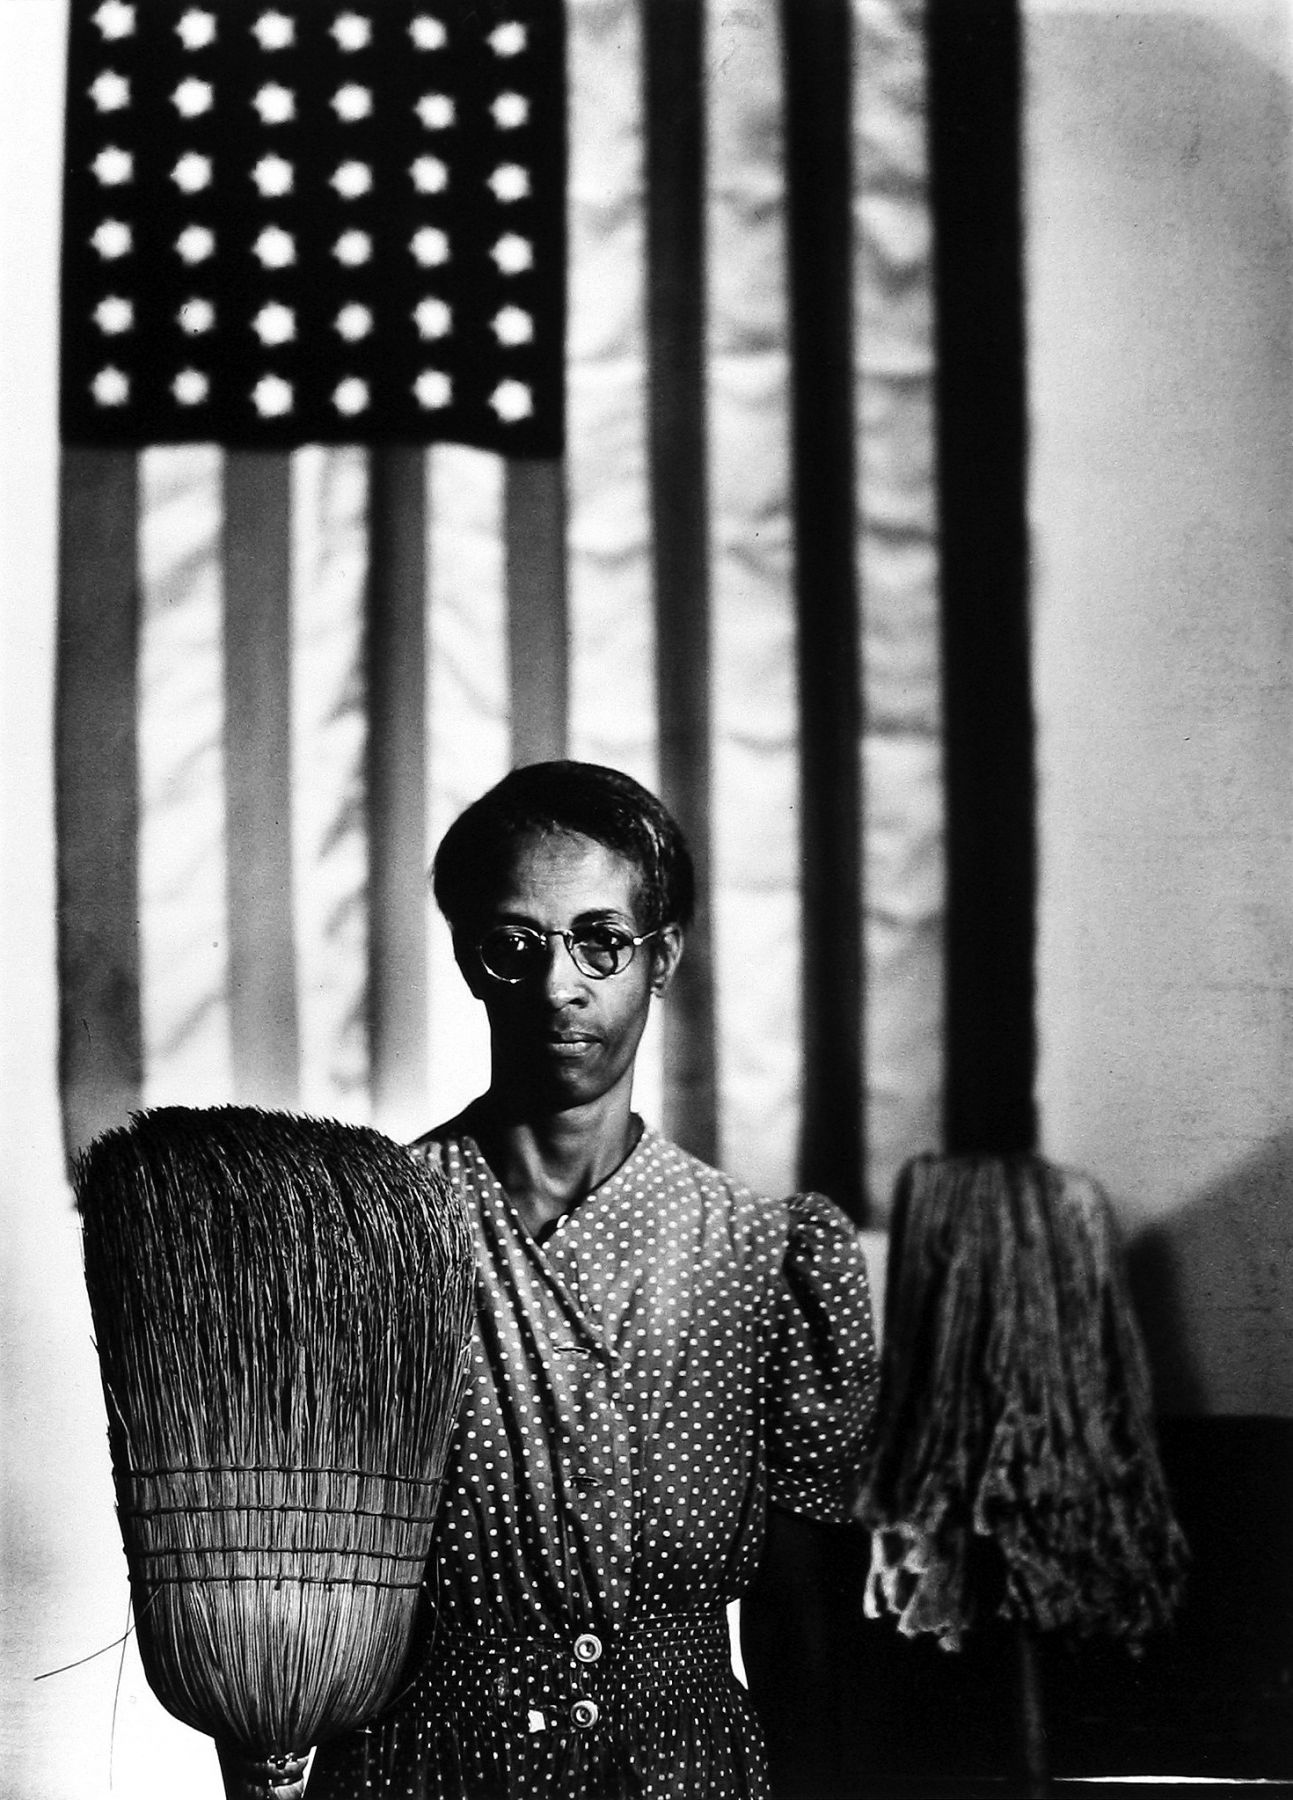 Gordon Parks - American Gothic, 1942 - Howard Greenberg Gallery - 2019